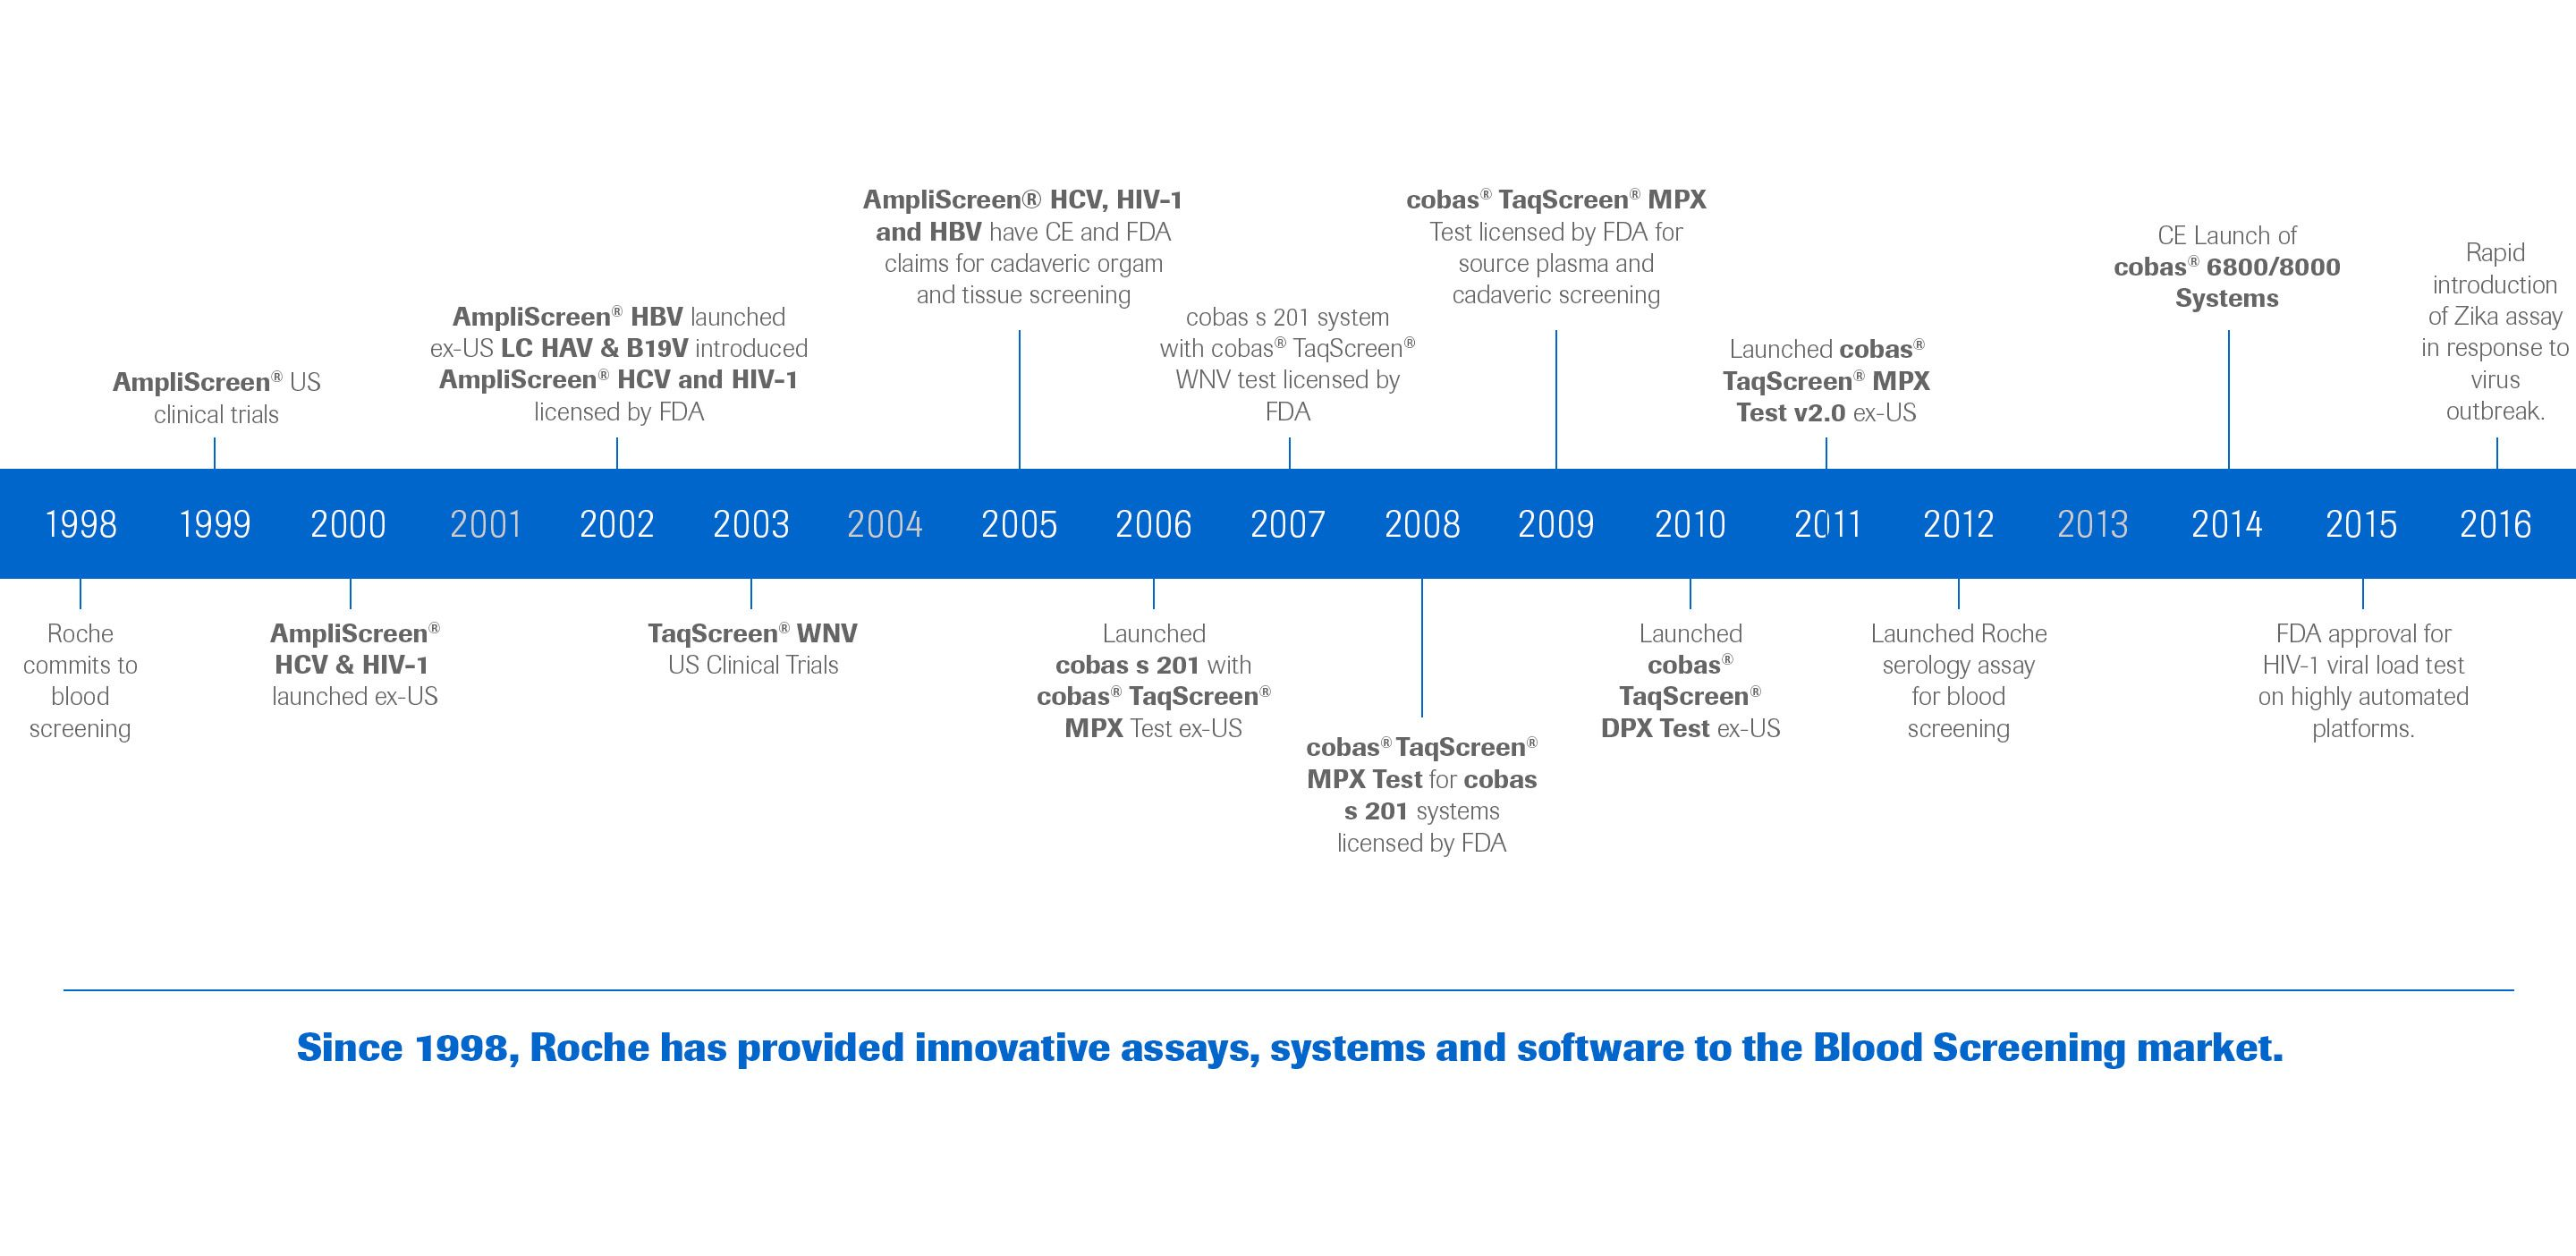 Timeline of Roche innovation in blood screening